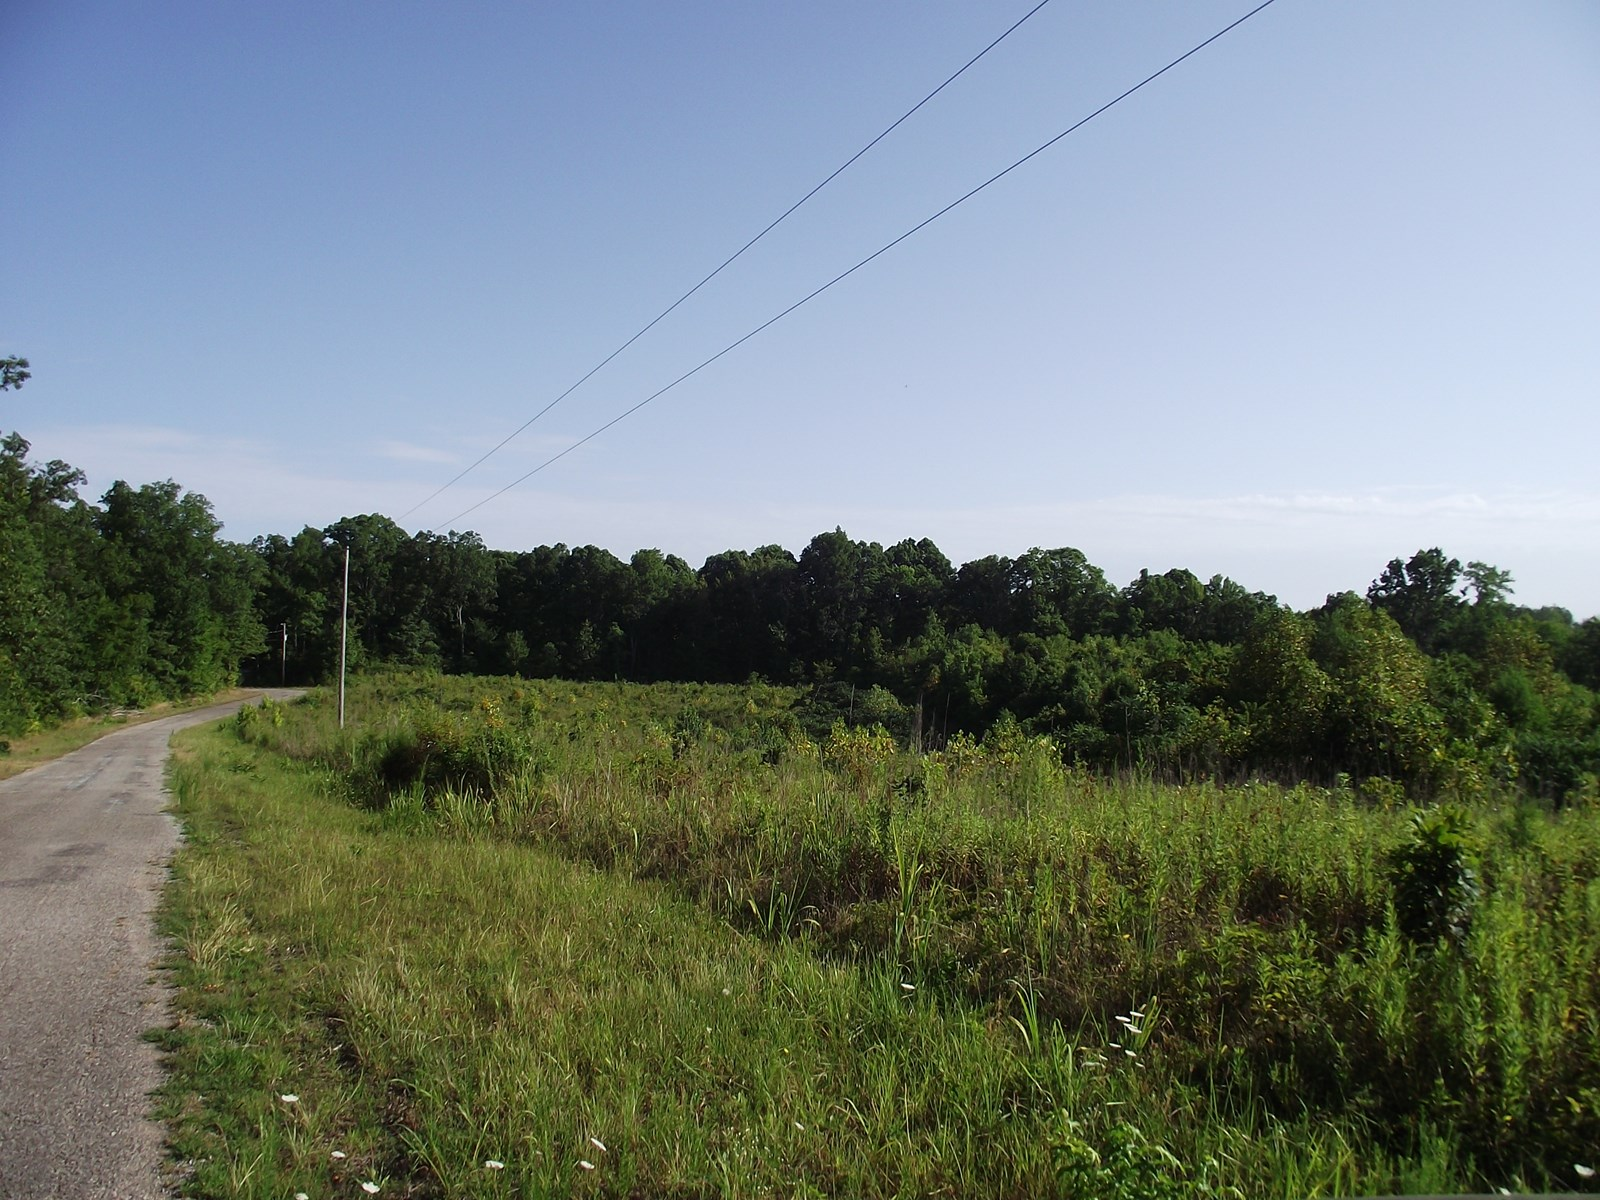 TENNESSEE LAND FOR SALE WITH CREEK - NO RESTRICTIONS